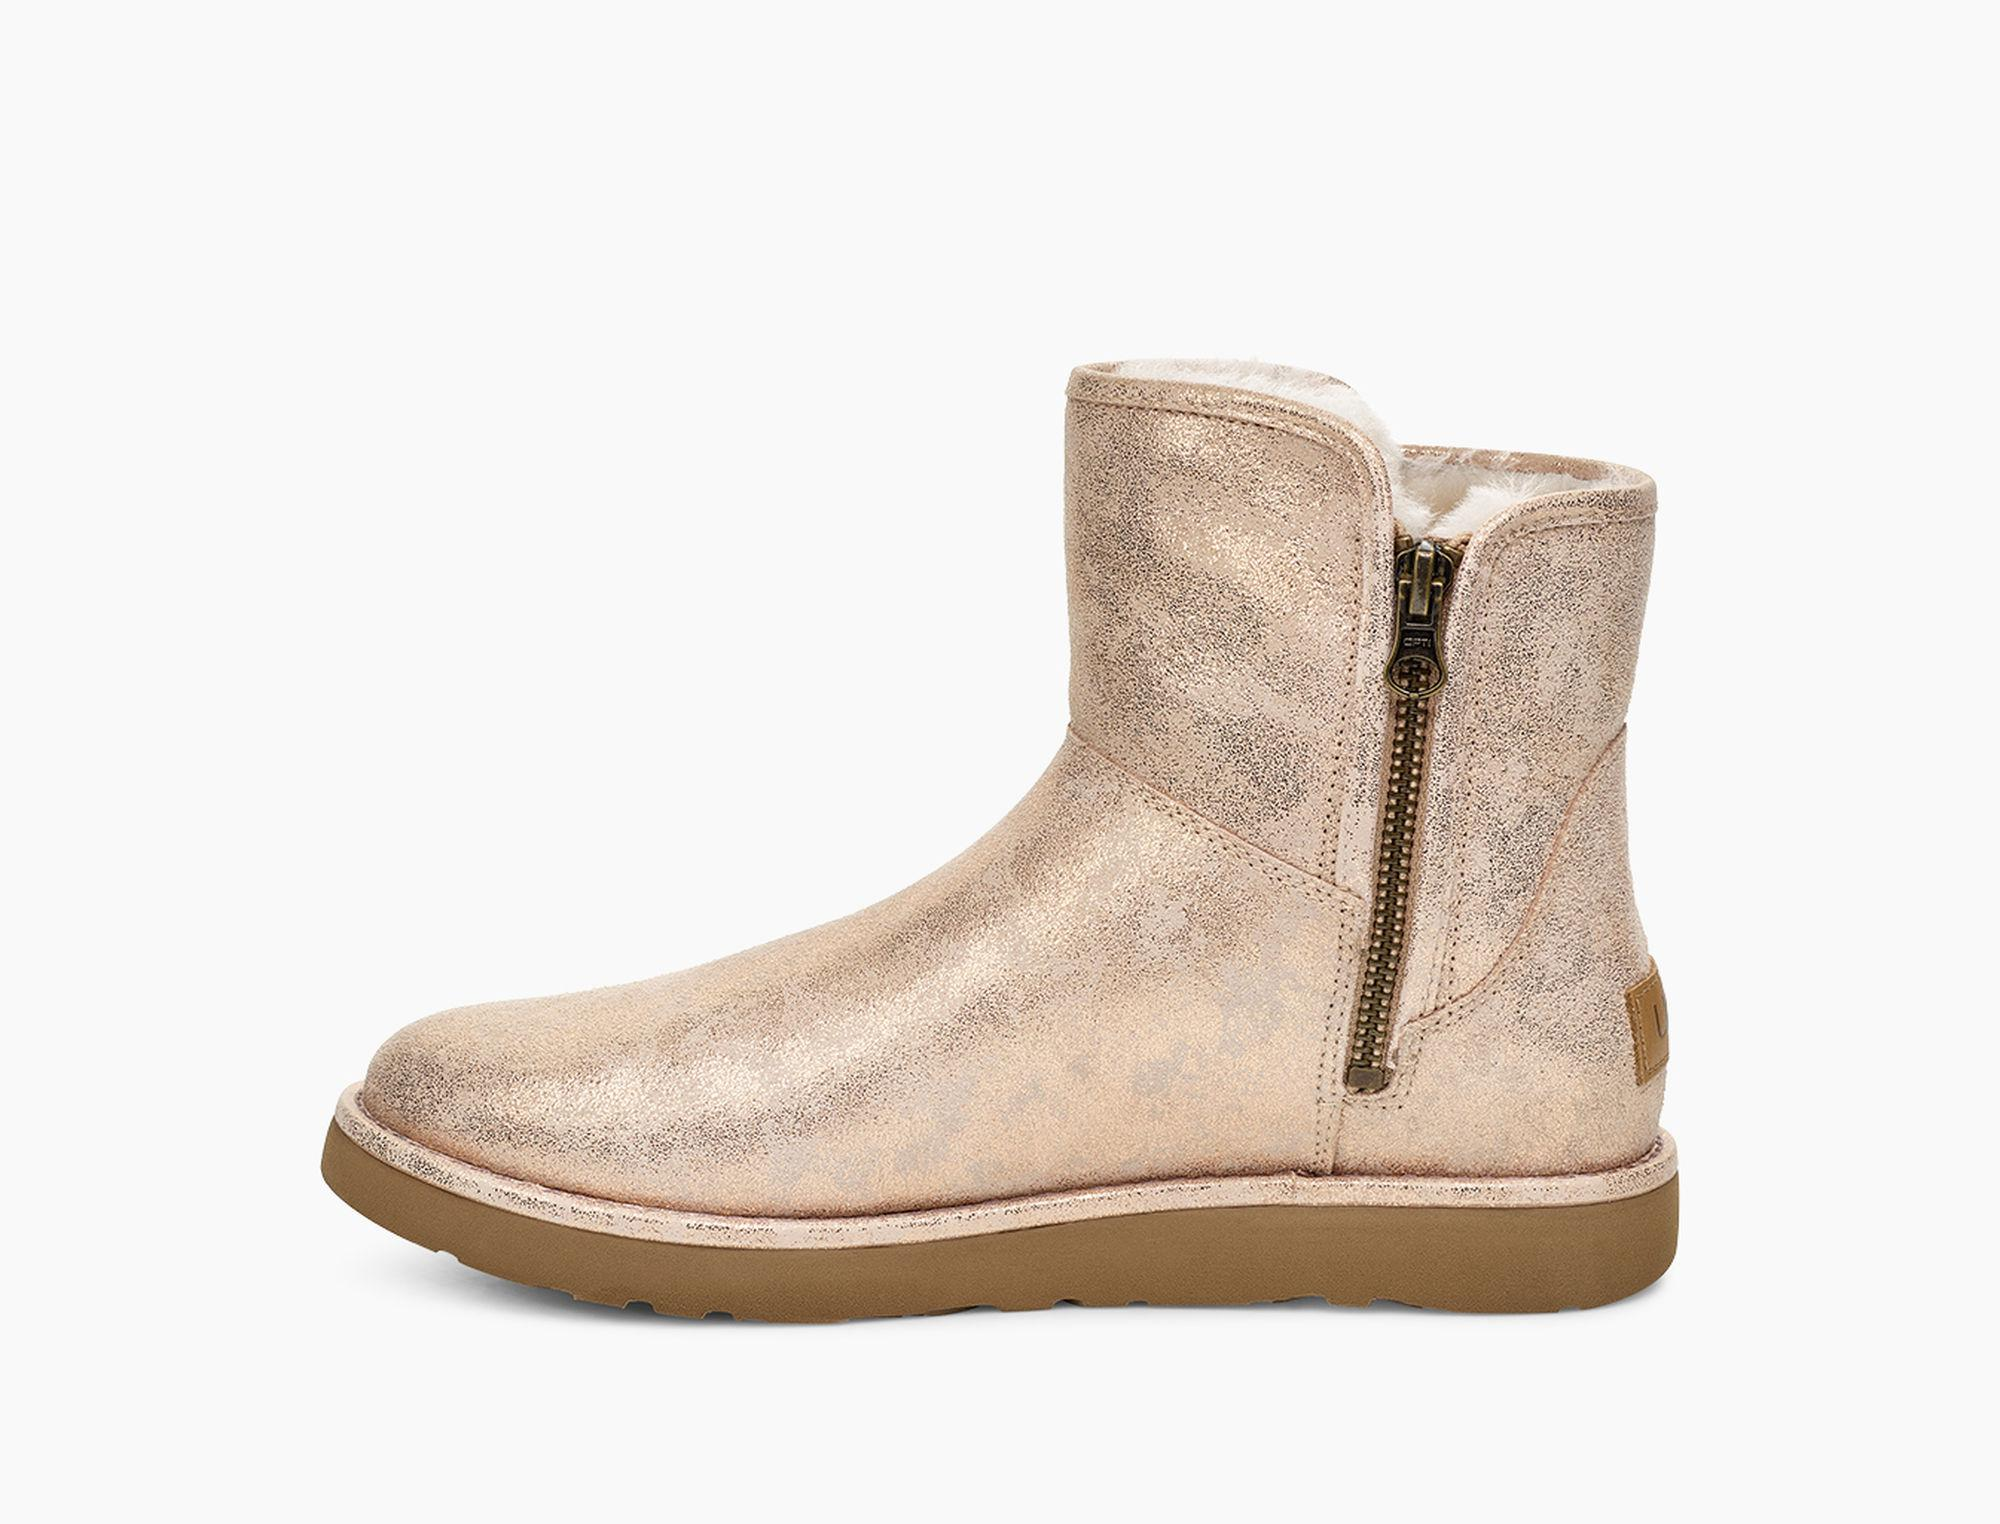 67999798d Ugg - Multicolor Abree Mini Stardust Boot Abree Mini Stardust Boot - Lyst.  View fullscreen